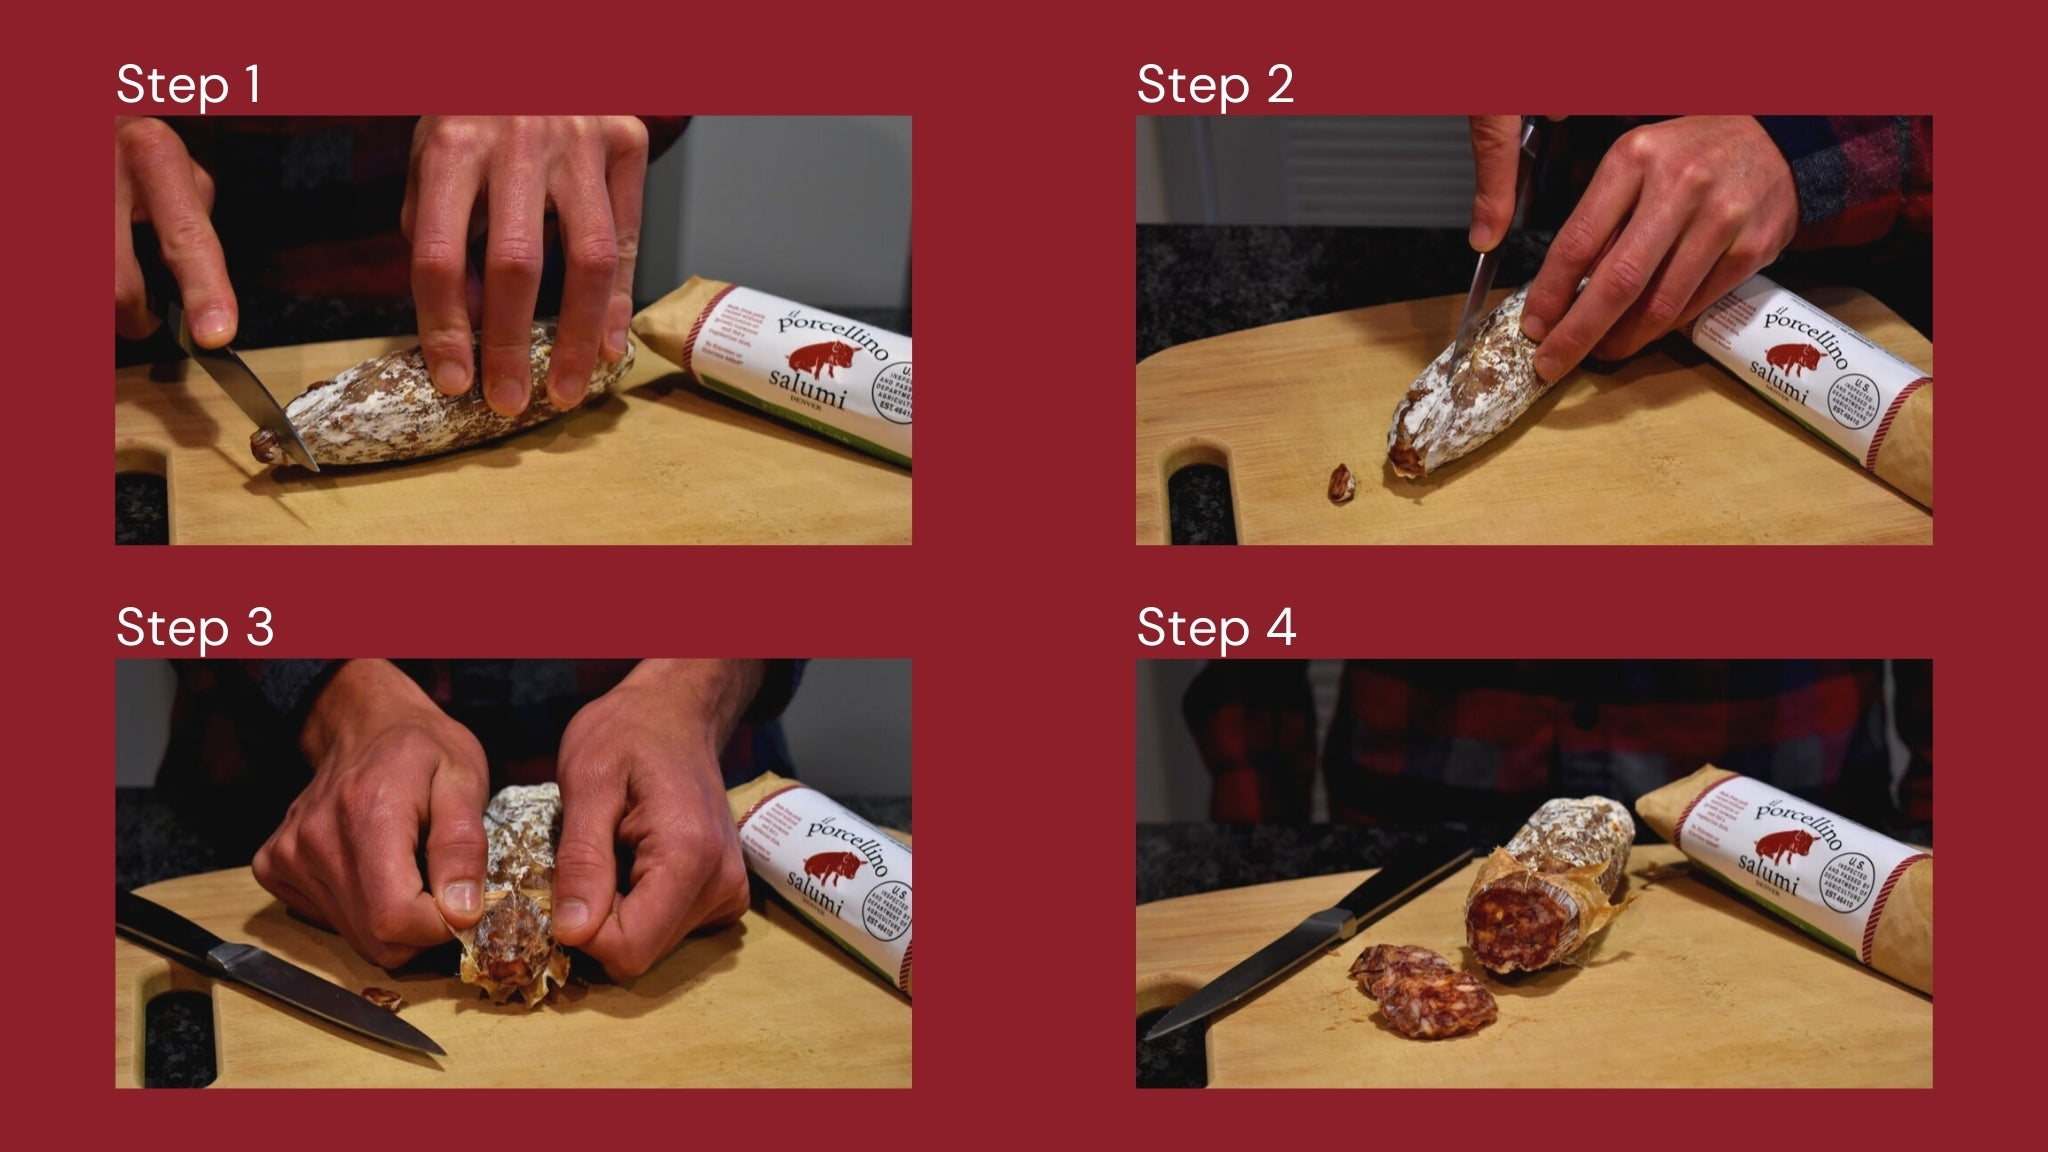 An image showing four pictures of someone cutting salami. Each picture shows a different step to remove the salami casing and end with cutting salami slices for eating.